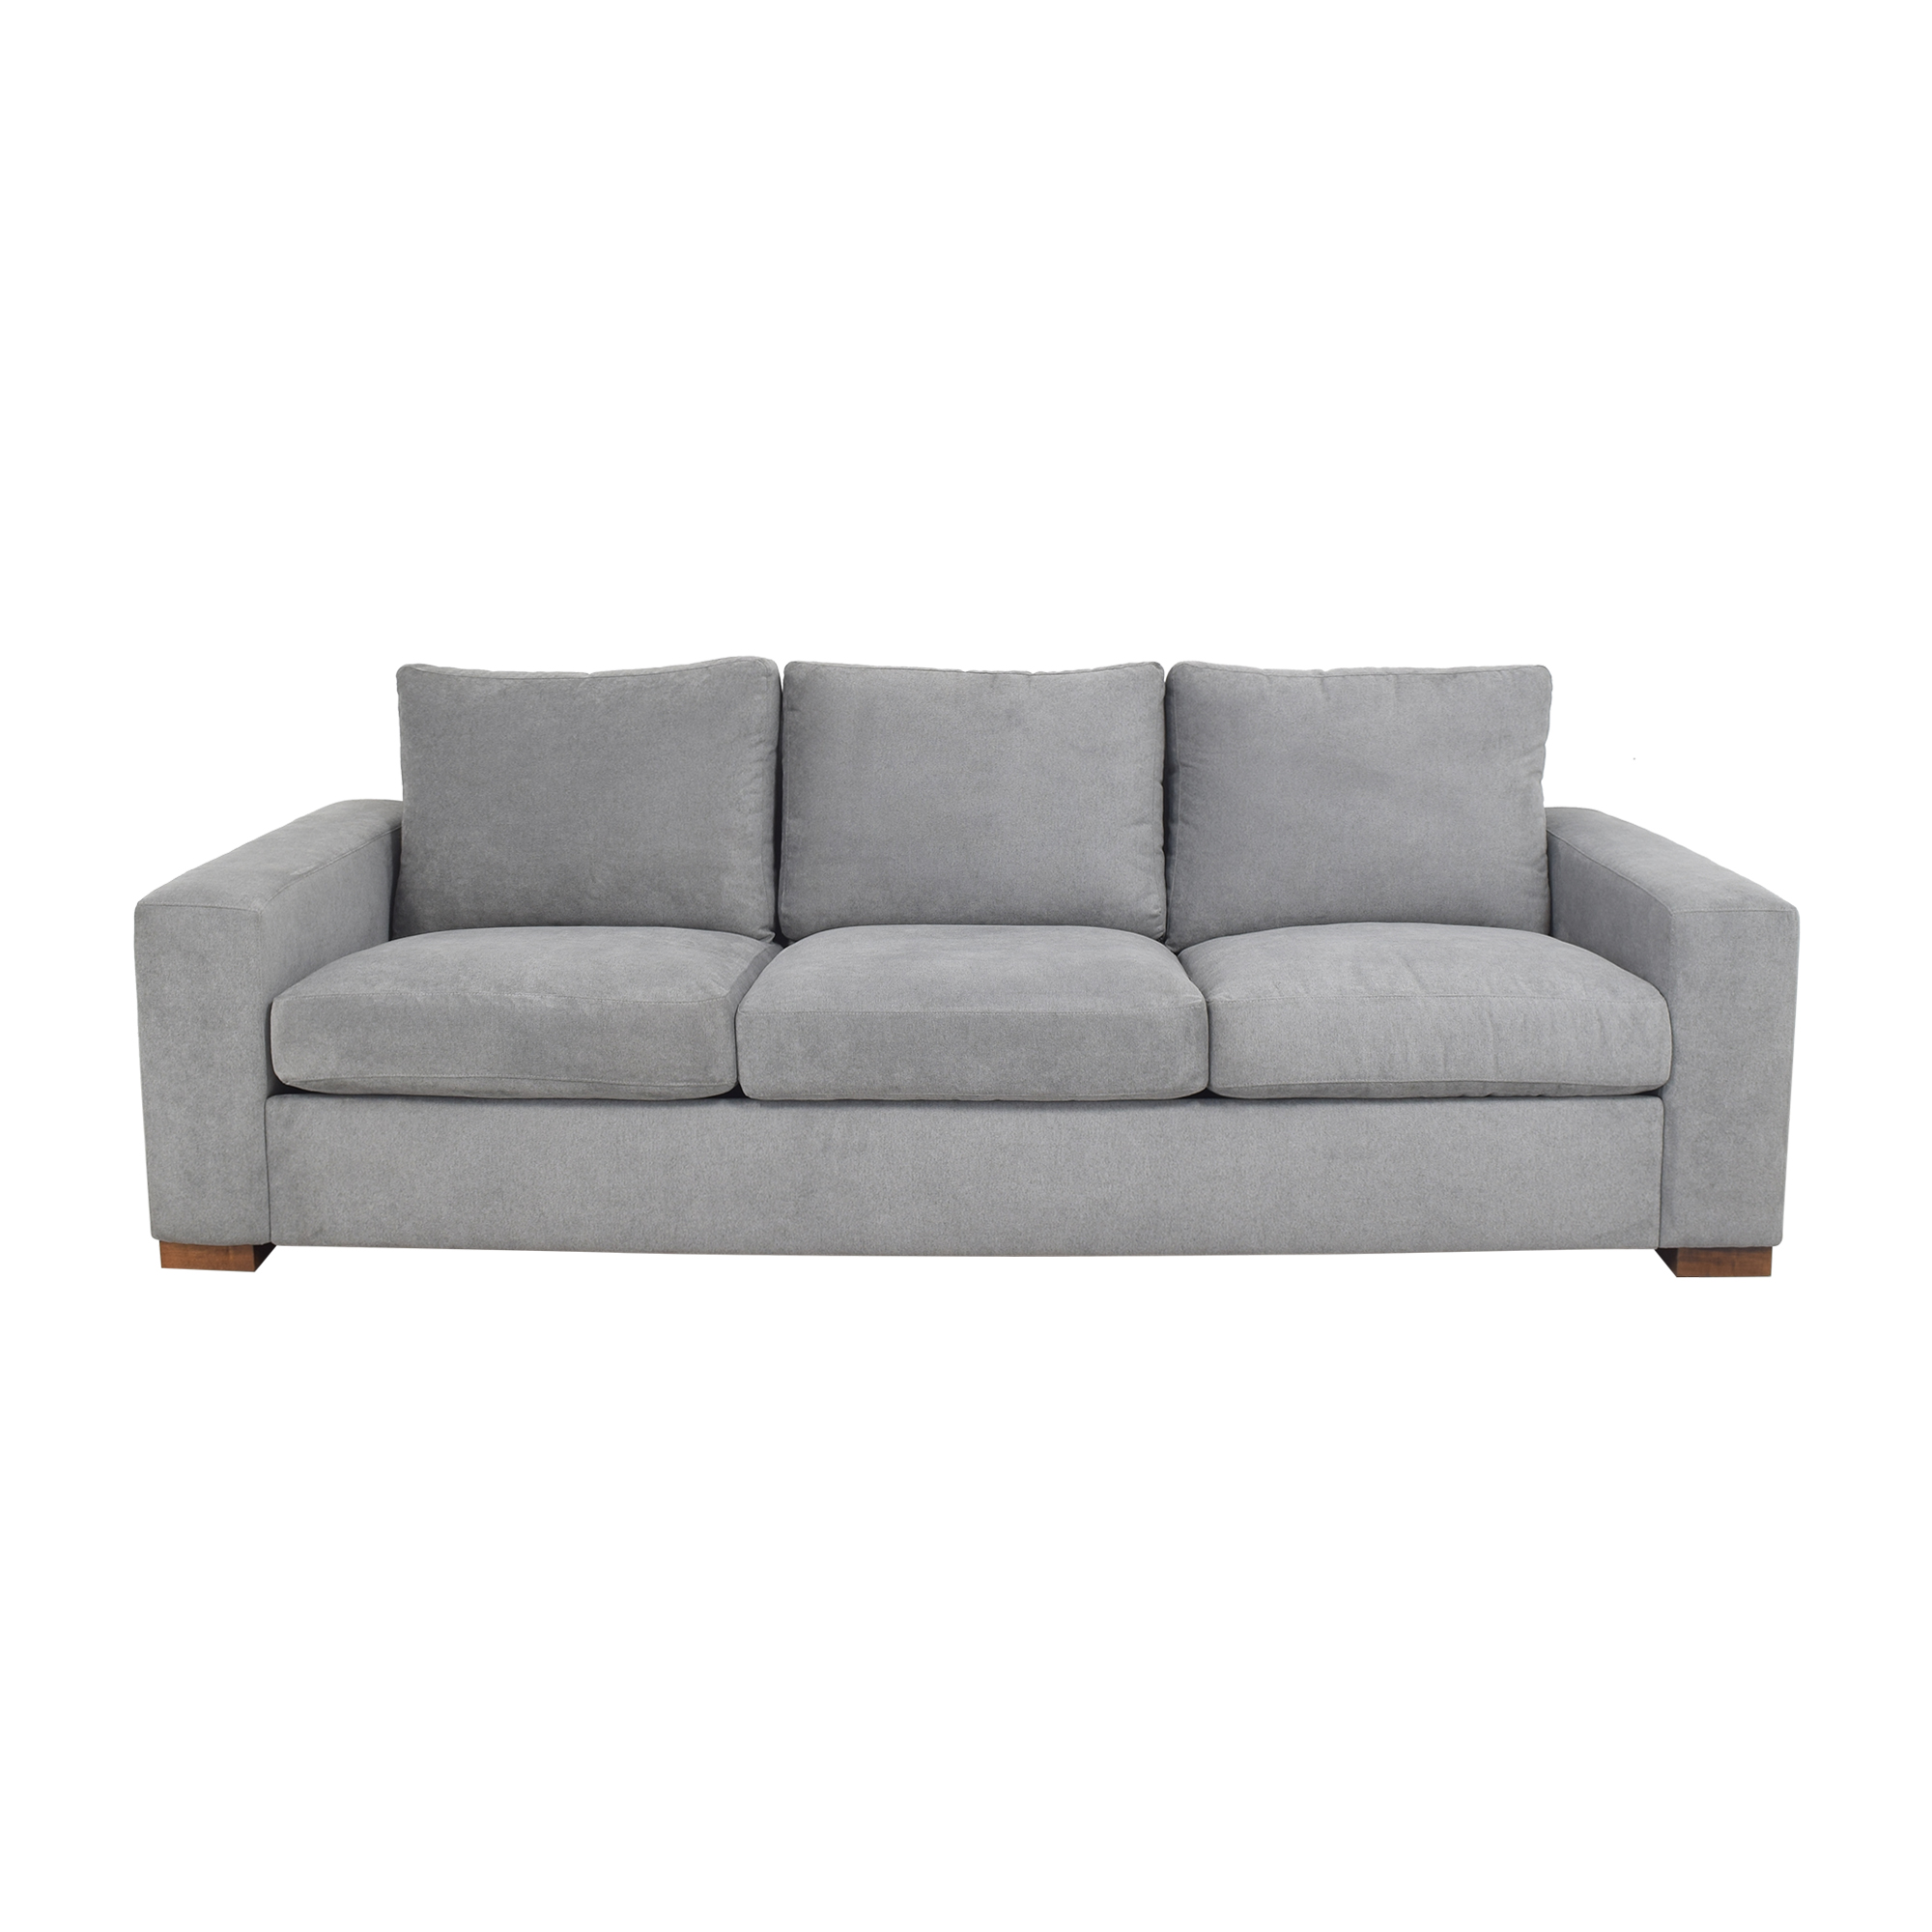 BenchMade Modern Couch Potato Sofa sale